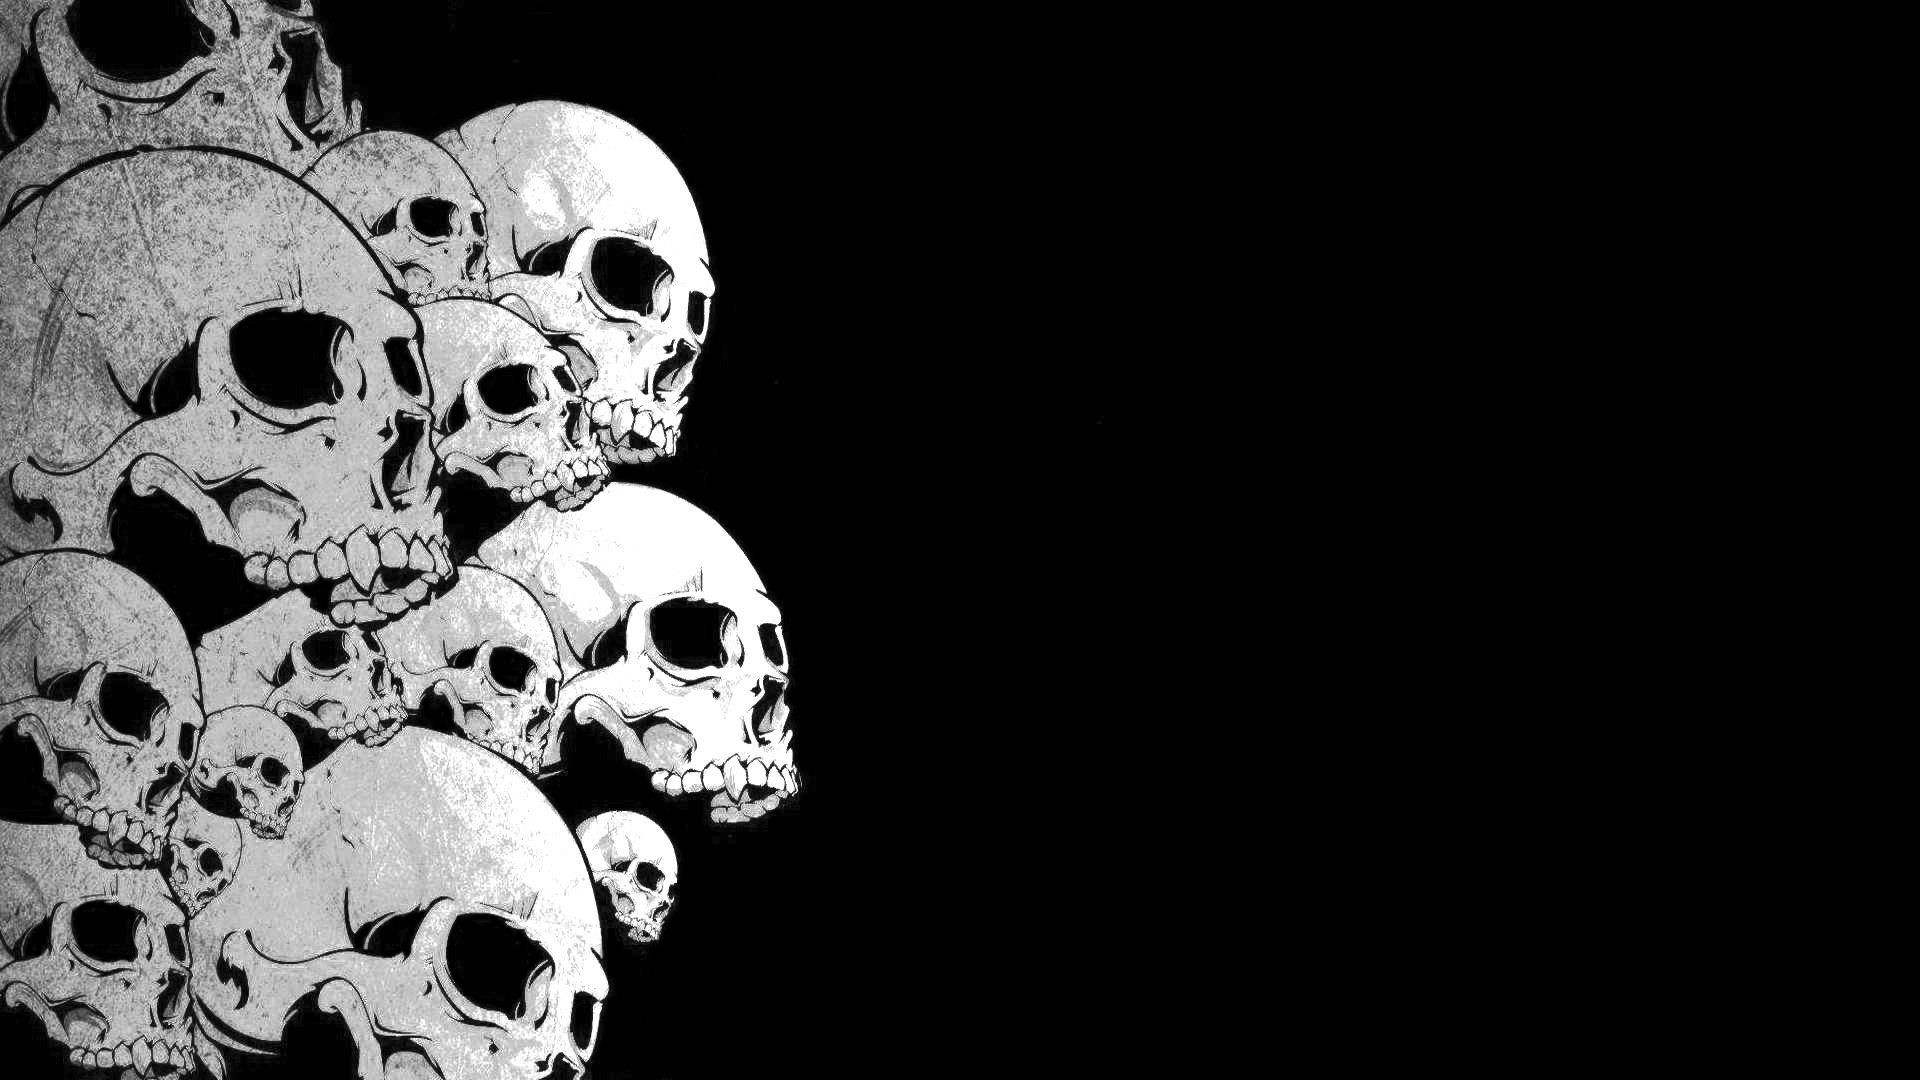 Skull Wallpapers and Backgrounds 14521 – HD Wallpapers Site